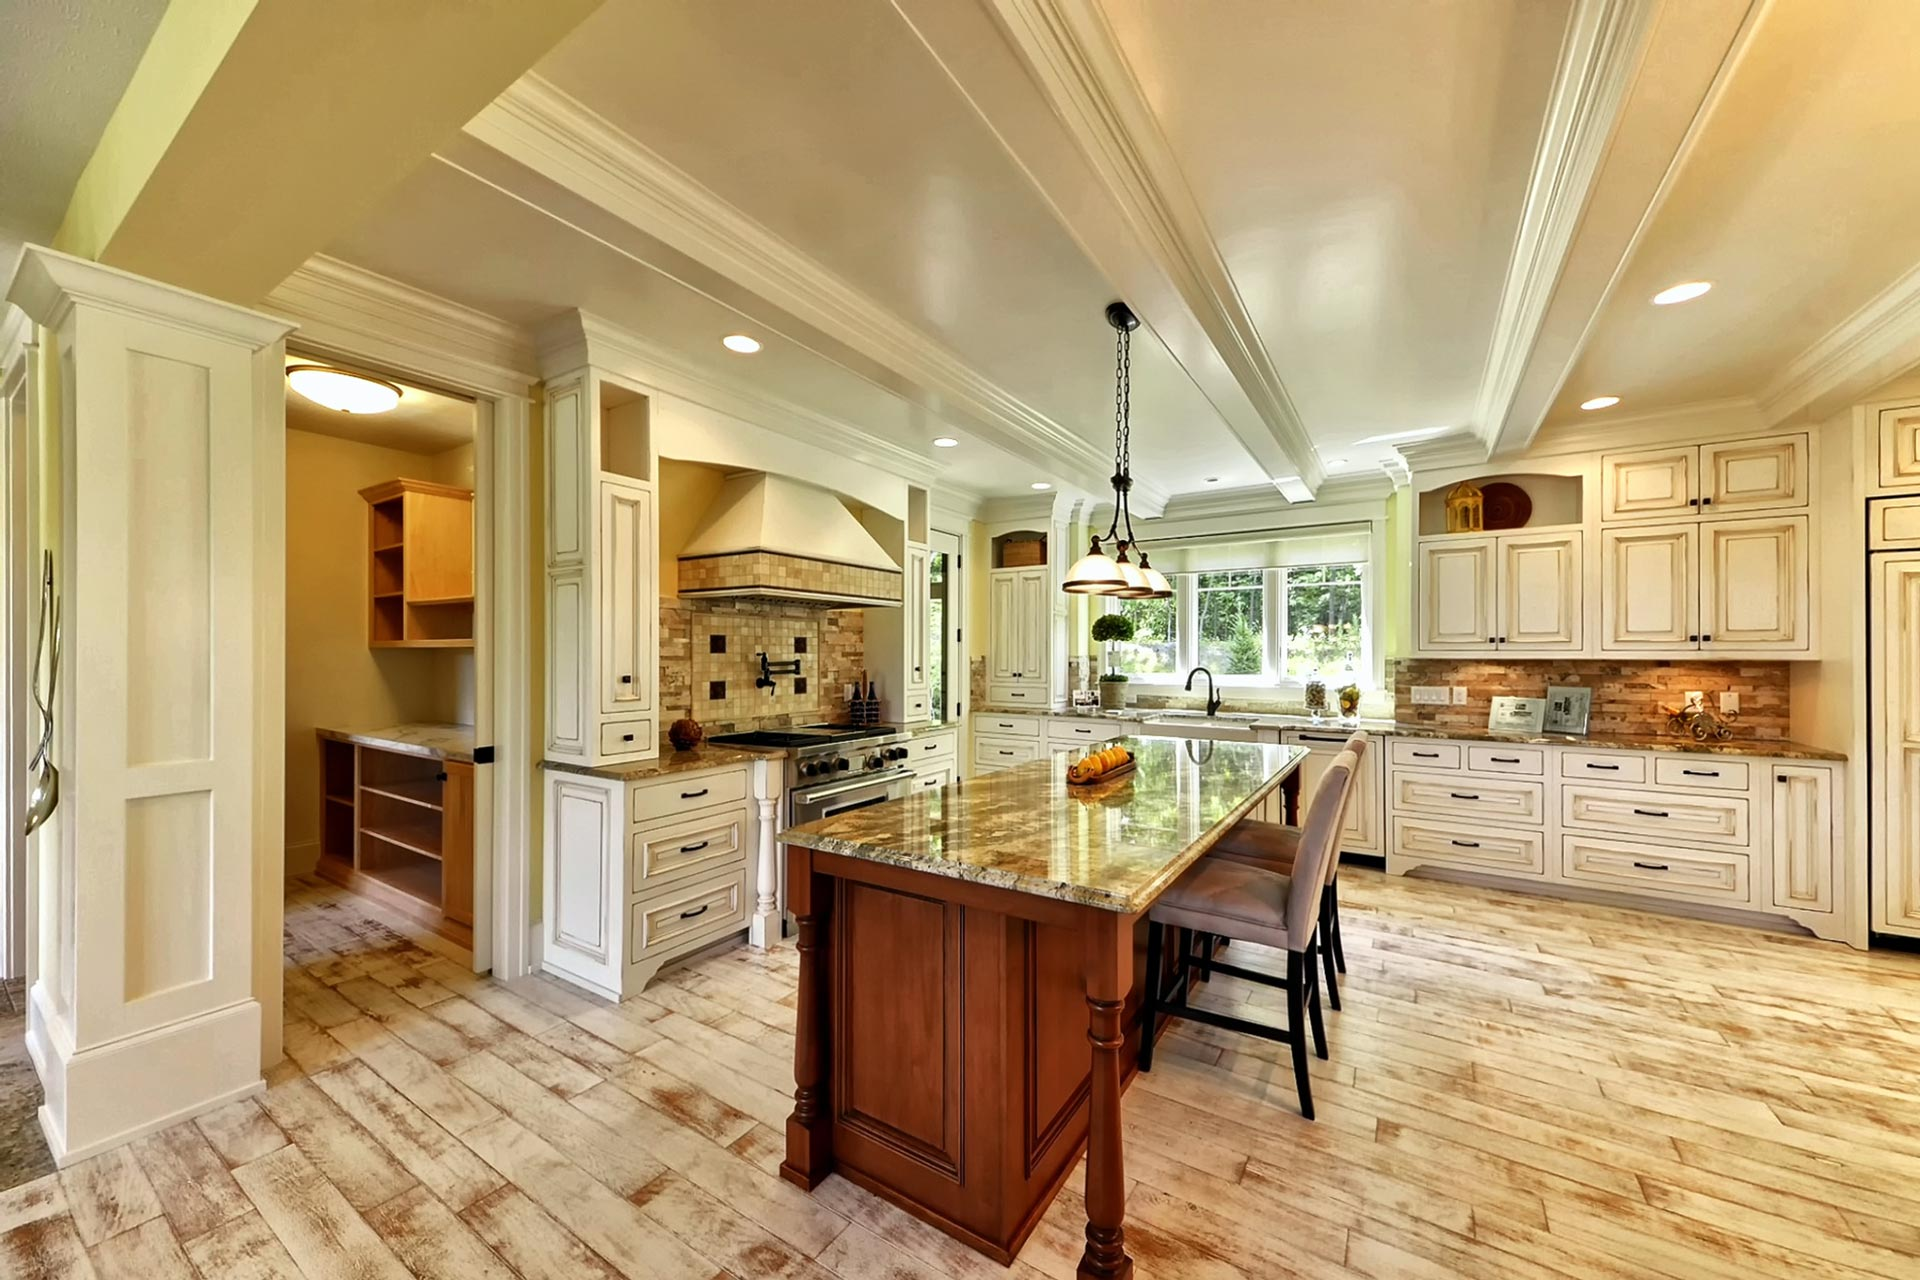 Roofing Contractors Grandville Home Remodeling Services